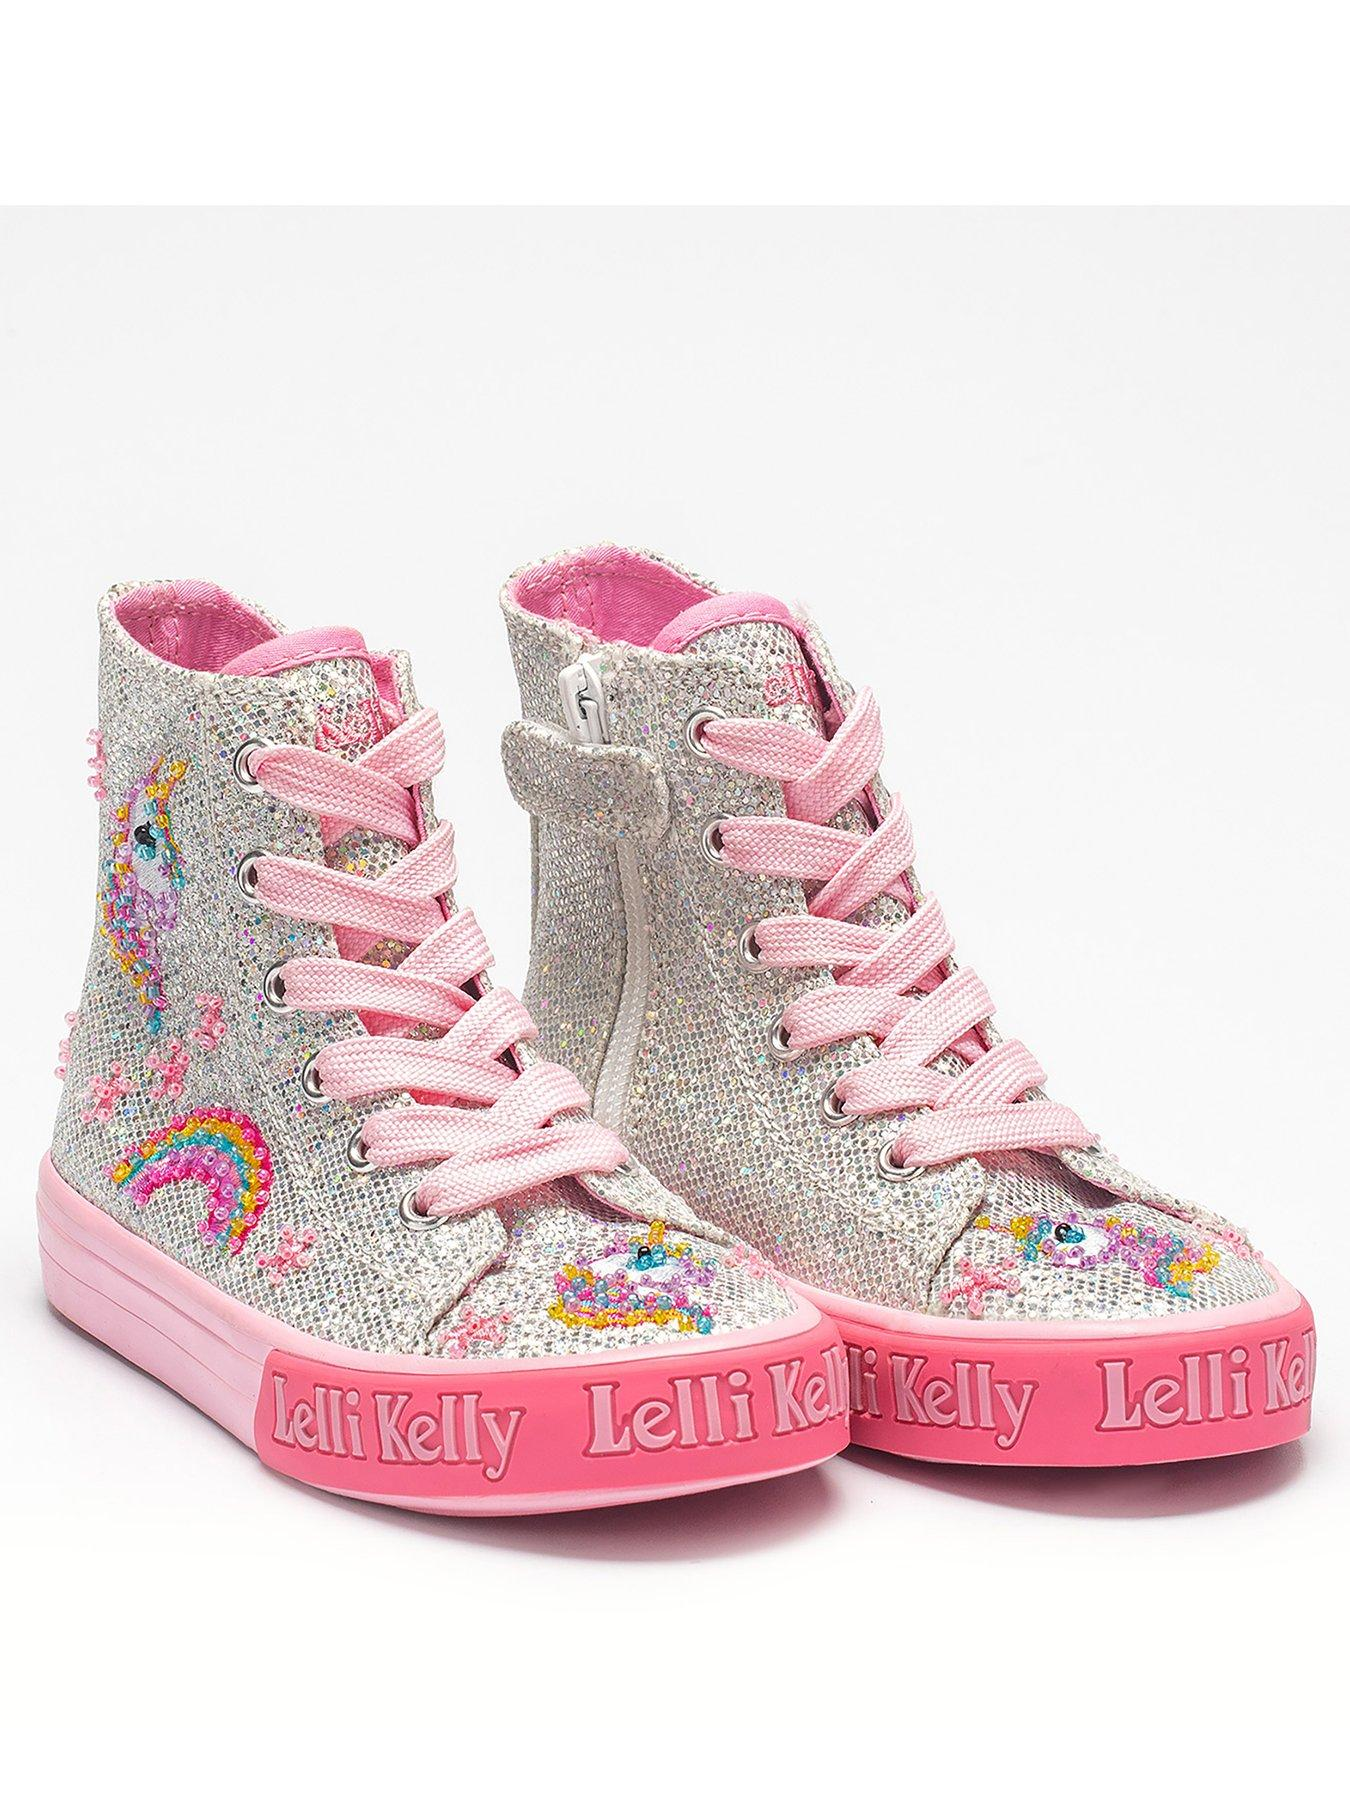 adidas Top Ten Hi I Kids Schuhe 25 whiter.pinkm.silver